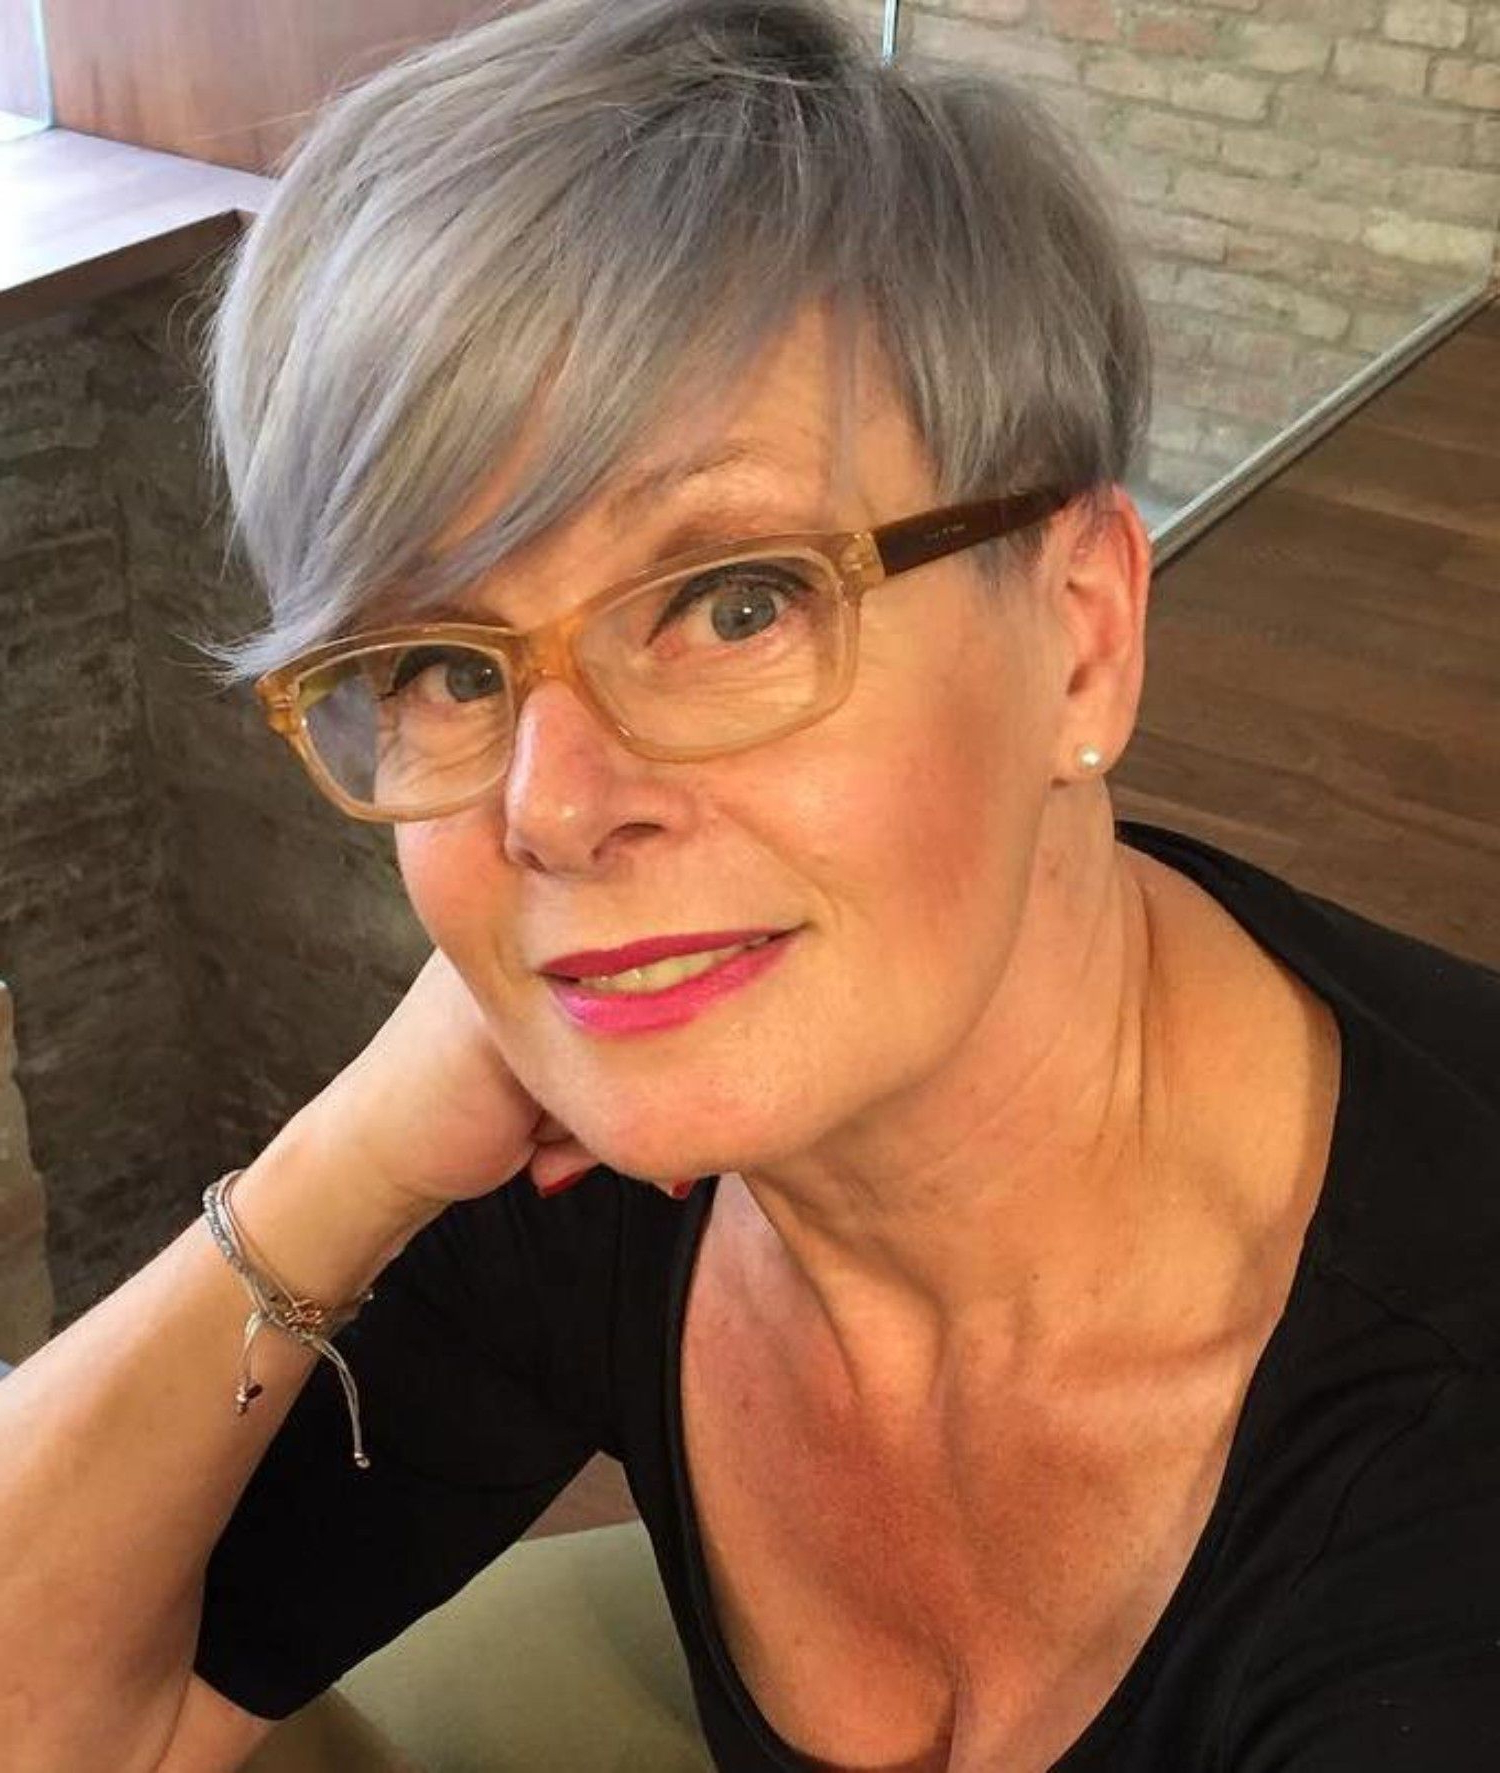 90 Classy And Simple Short Hairstyles For Women Over 50 In 2018 Throughout Cropped Gray Pixie Hairstyles With Swoopy Bangs (View 15 of 20)